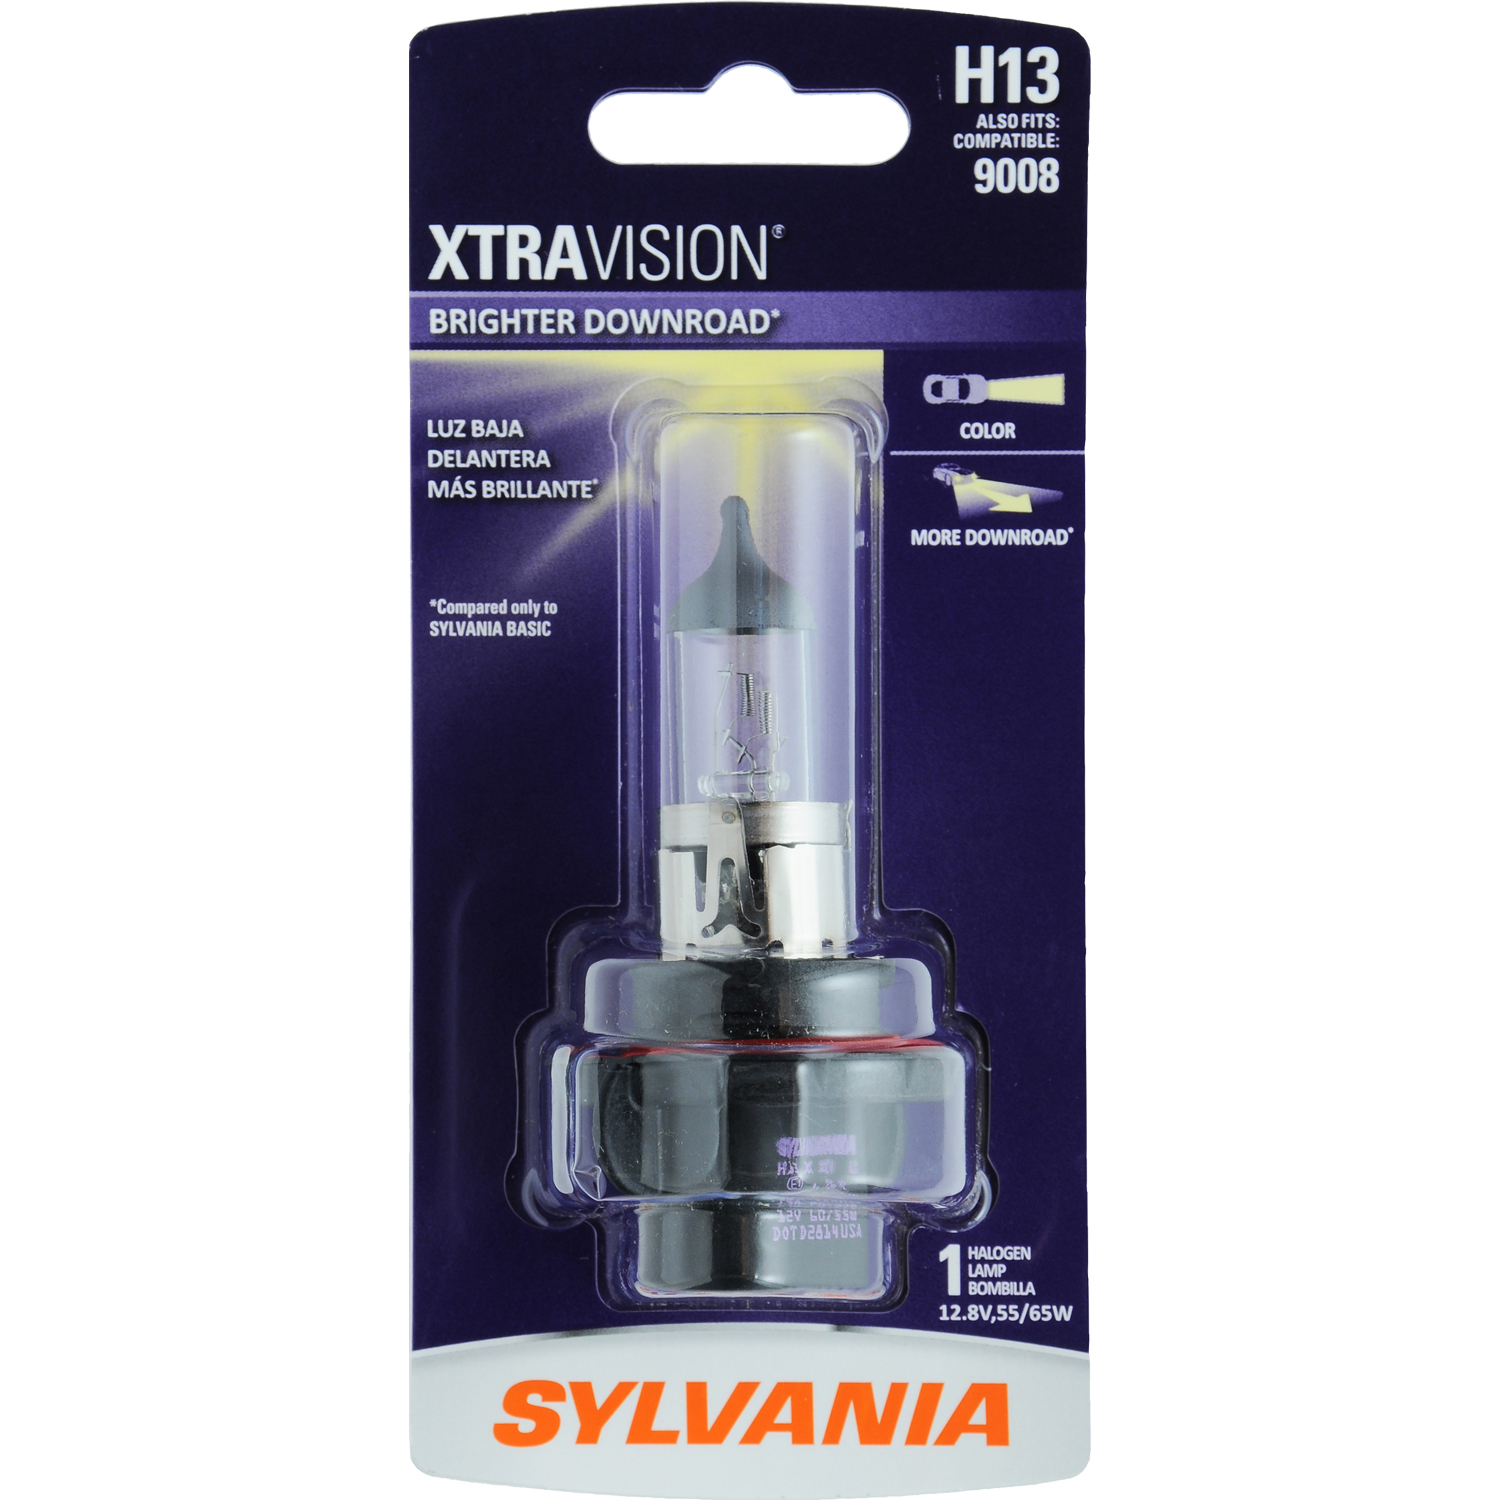 SYLVANIA H13 XtraVision Halogen Headlight Bulb, Pack of 1